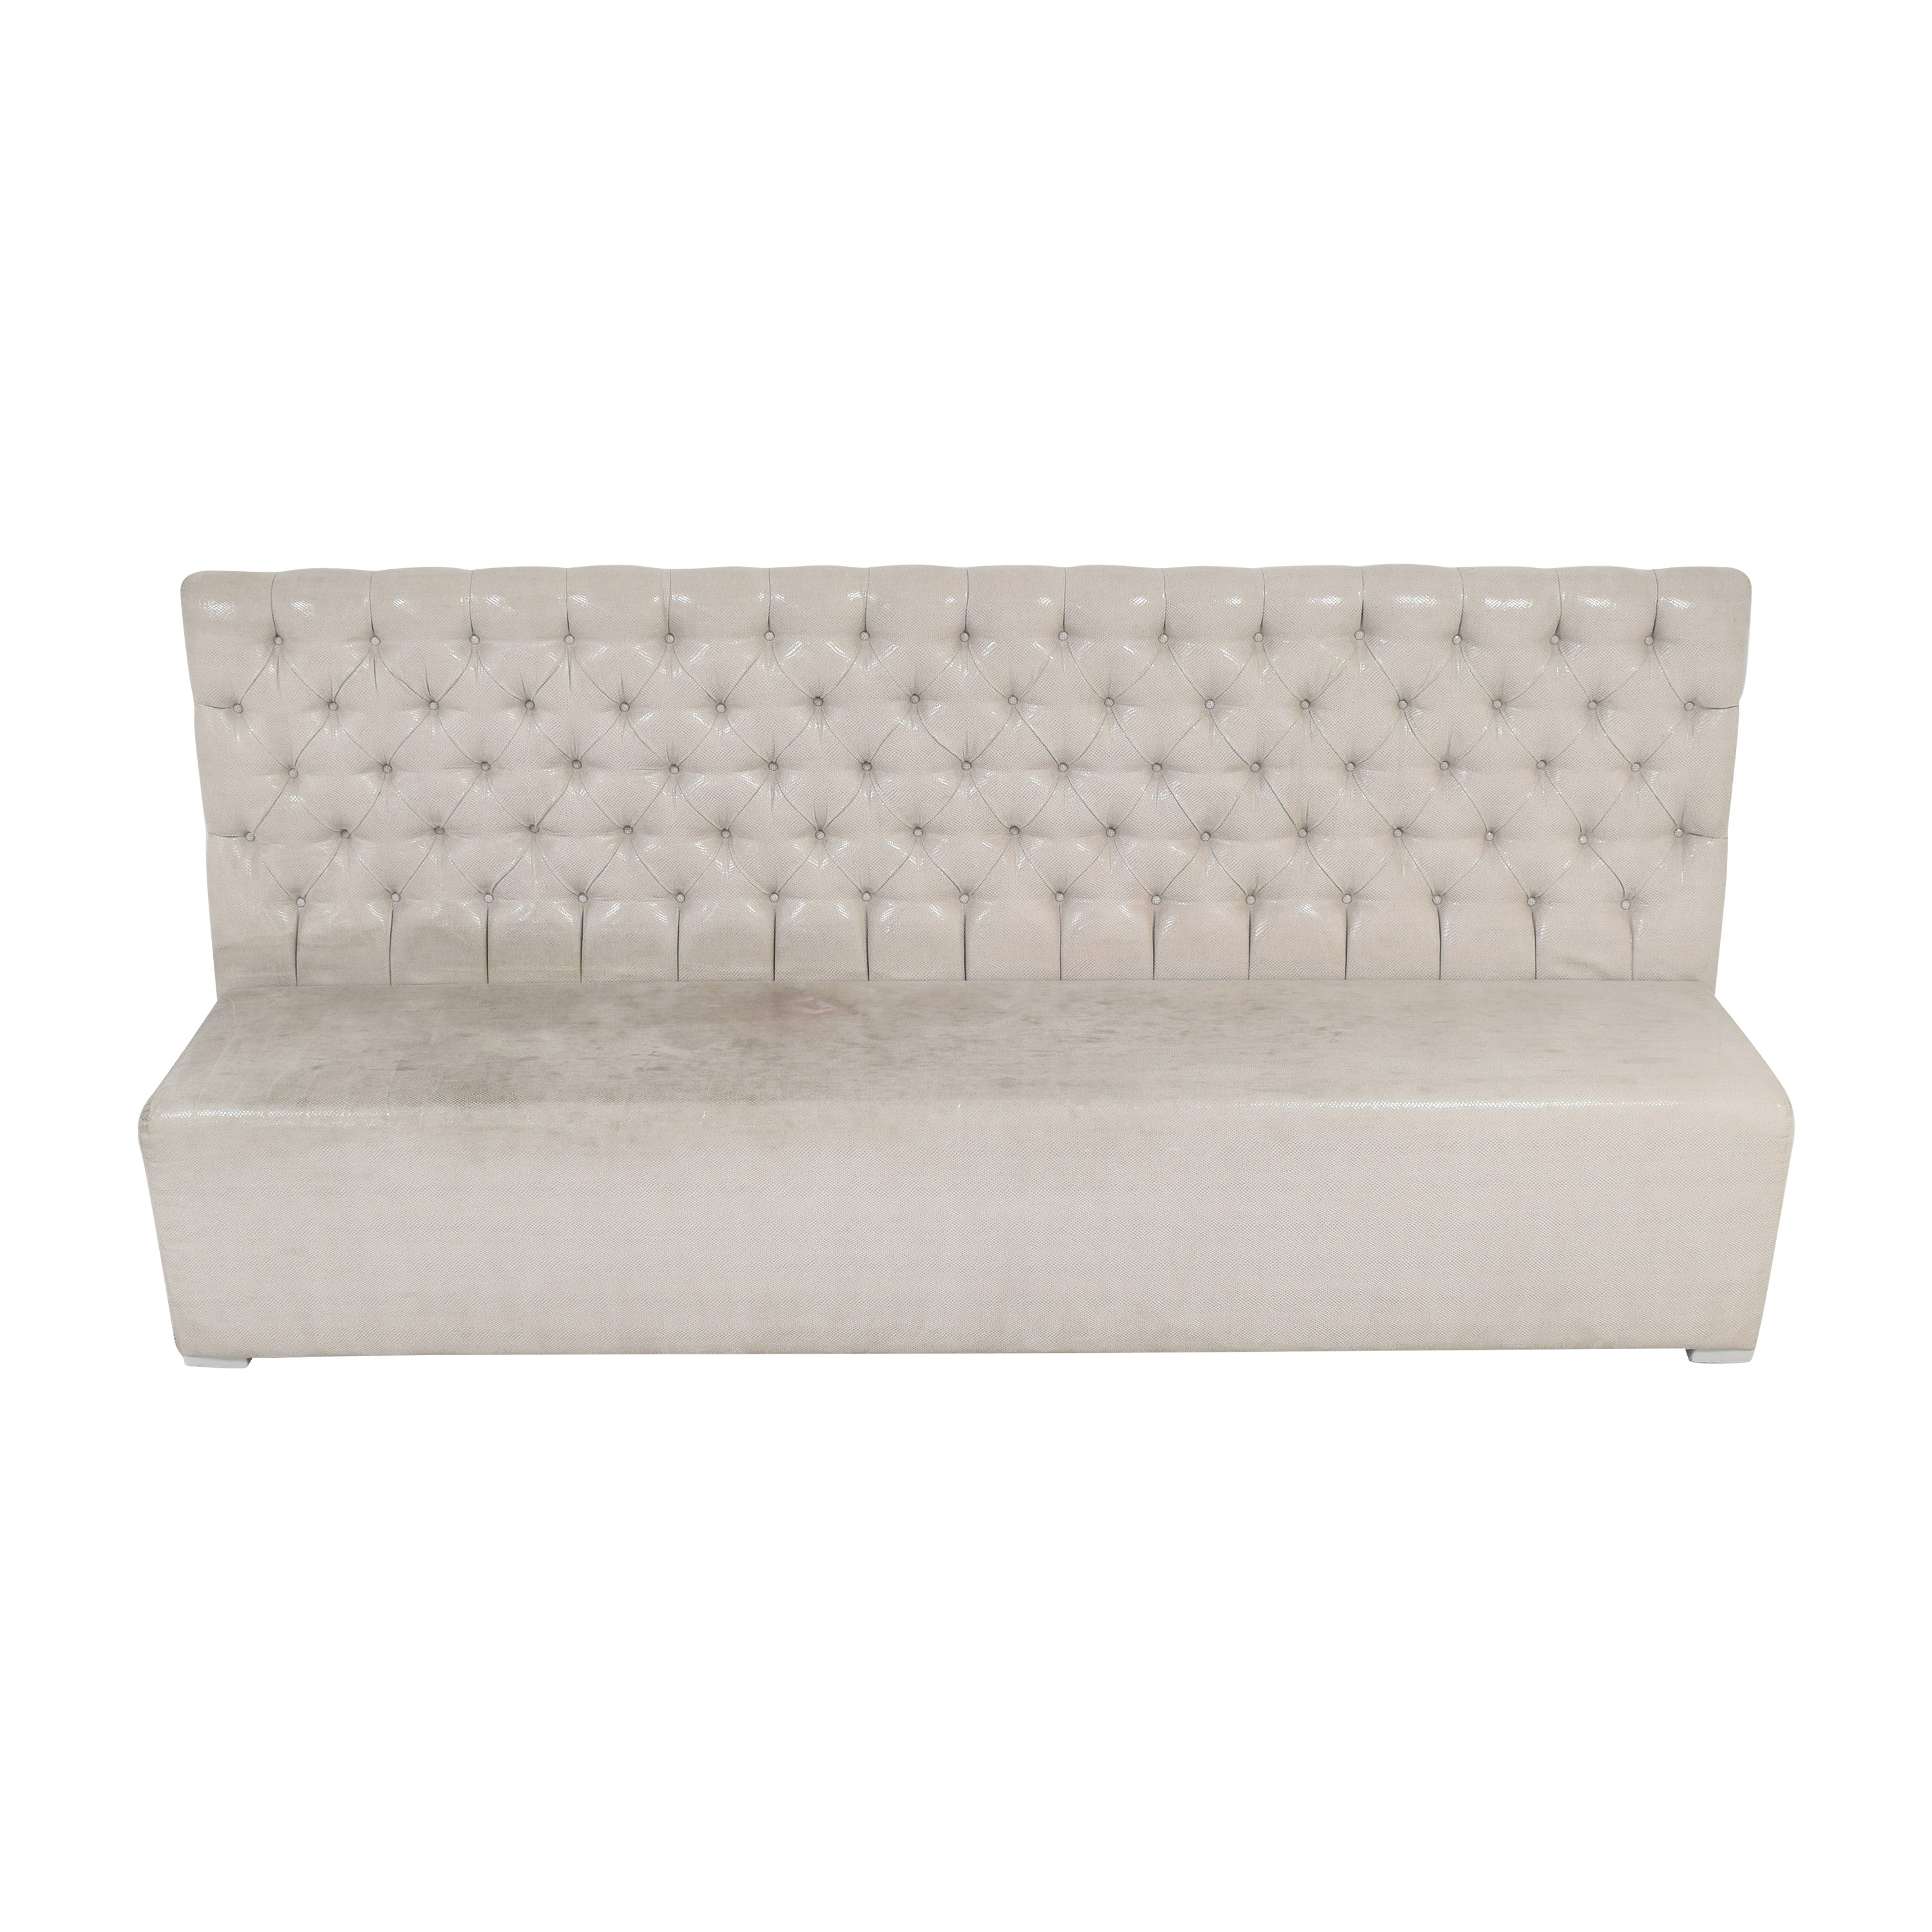 Tufted Banquette Bench nj